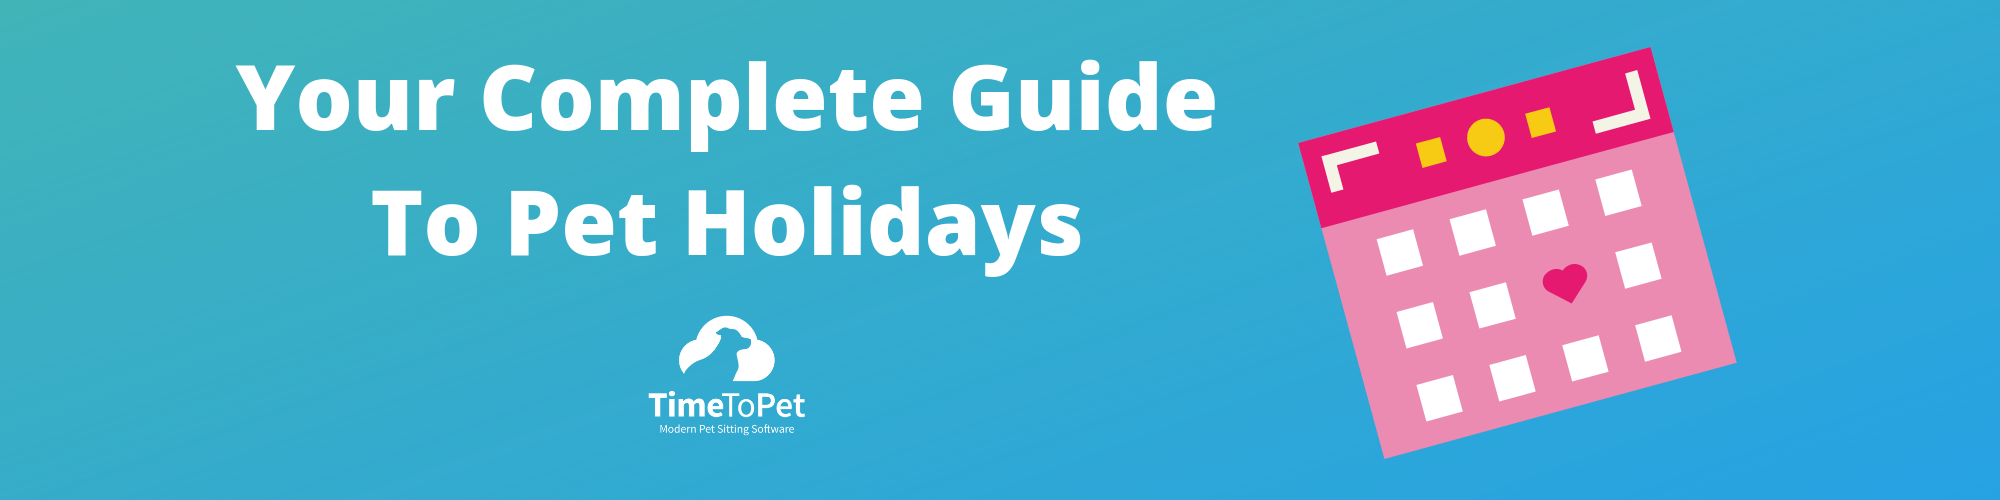 Your Complete Guide to Pet Holidays